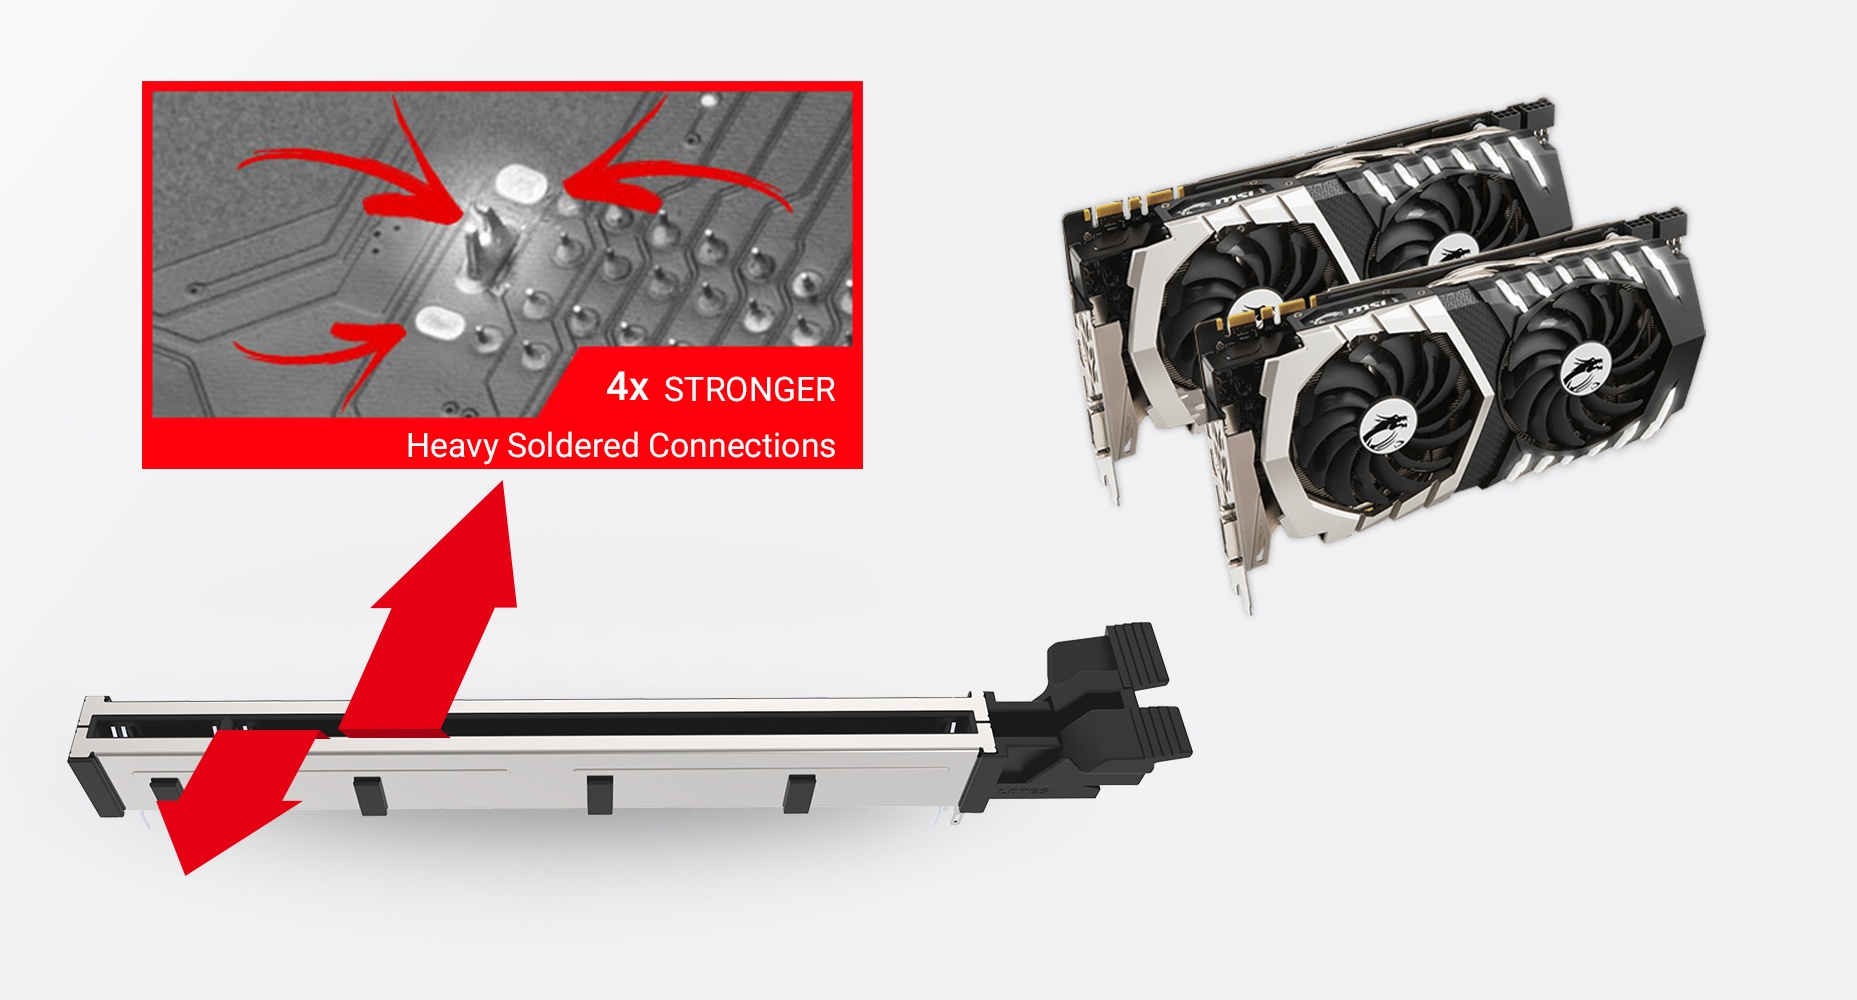 MSI MEG B550 UNIFY-X MULTIPLE GPU SUPPORTS AND STEEL ARMOR